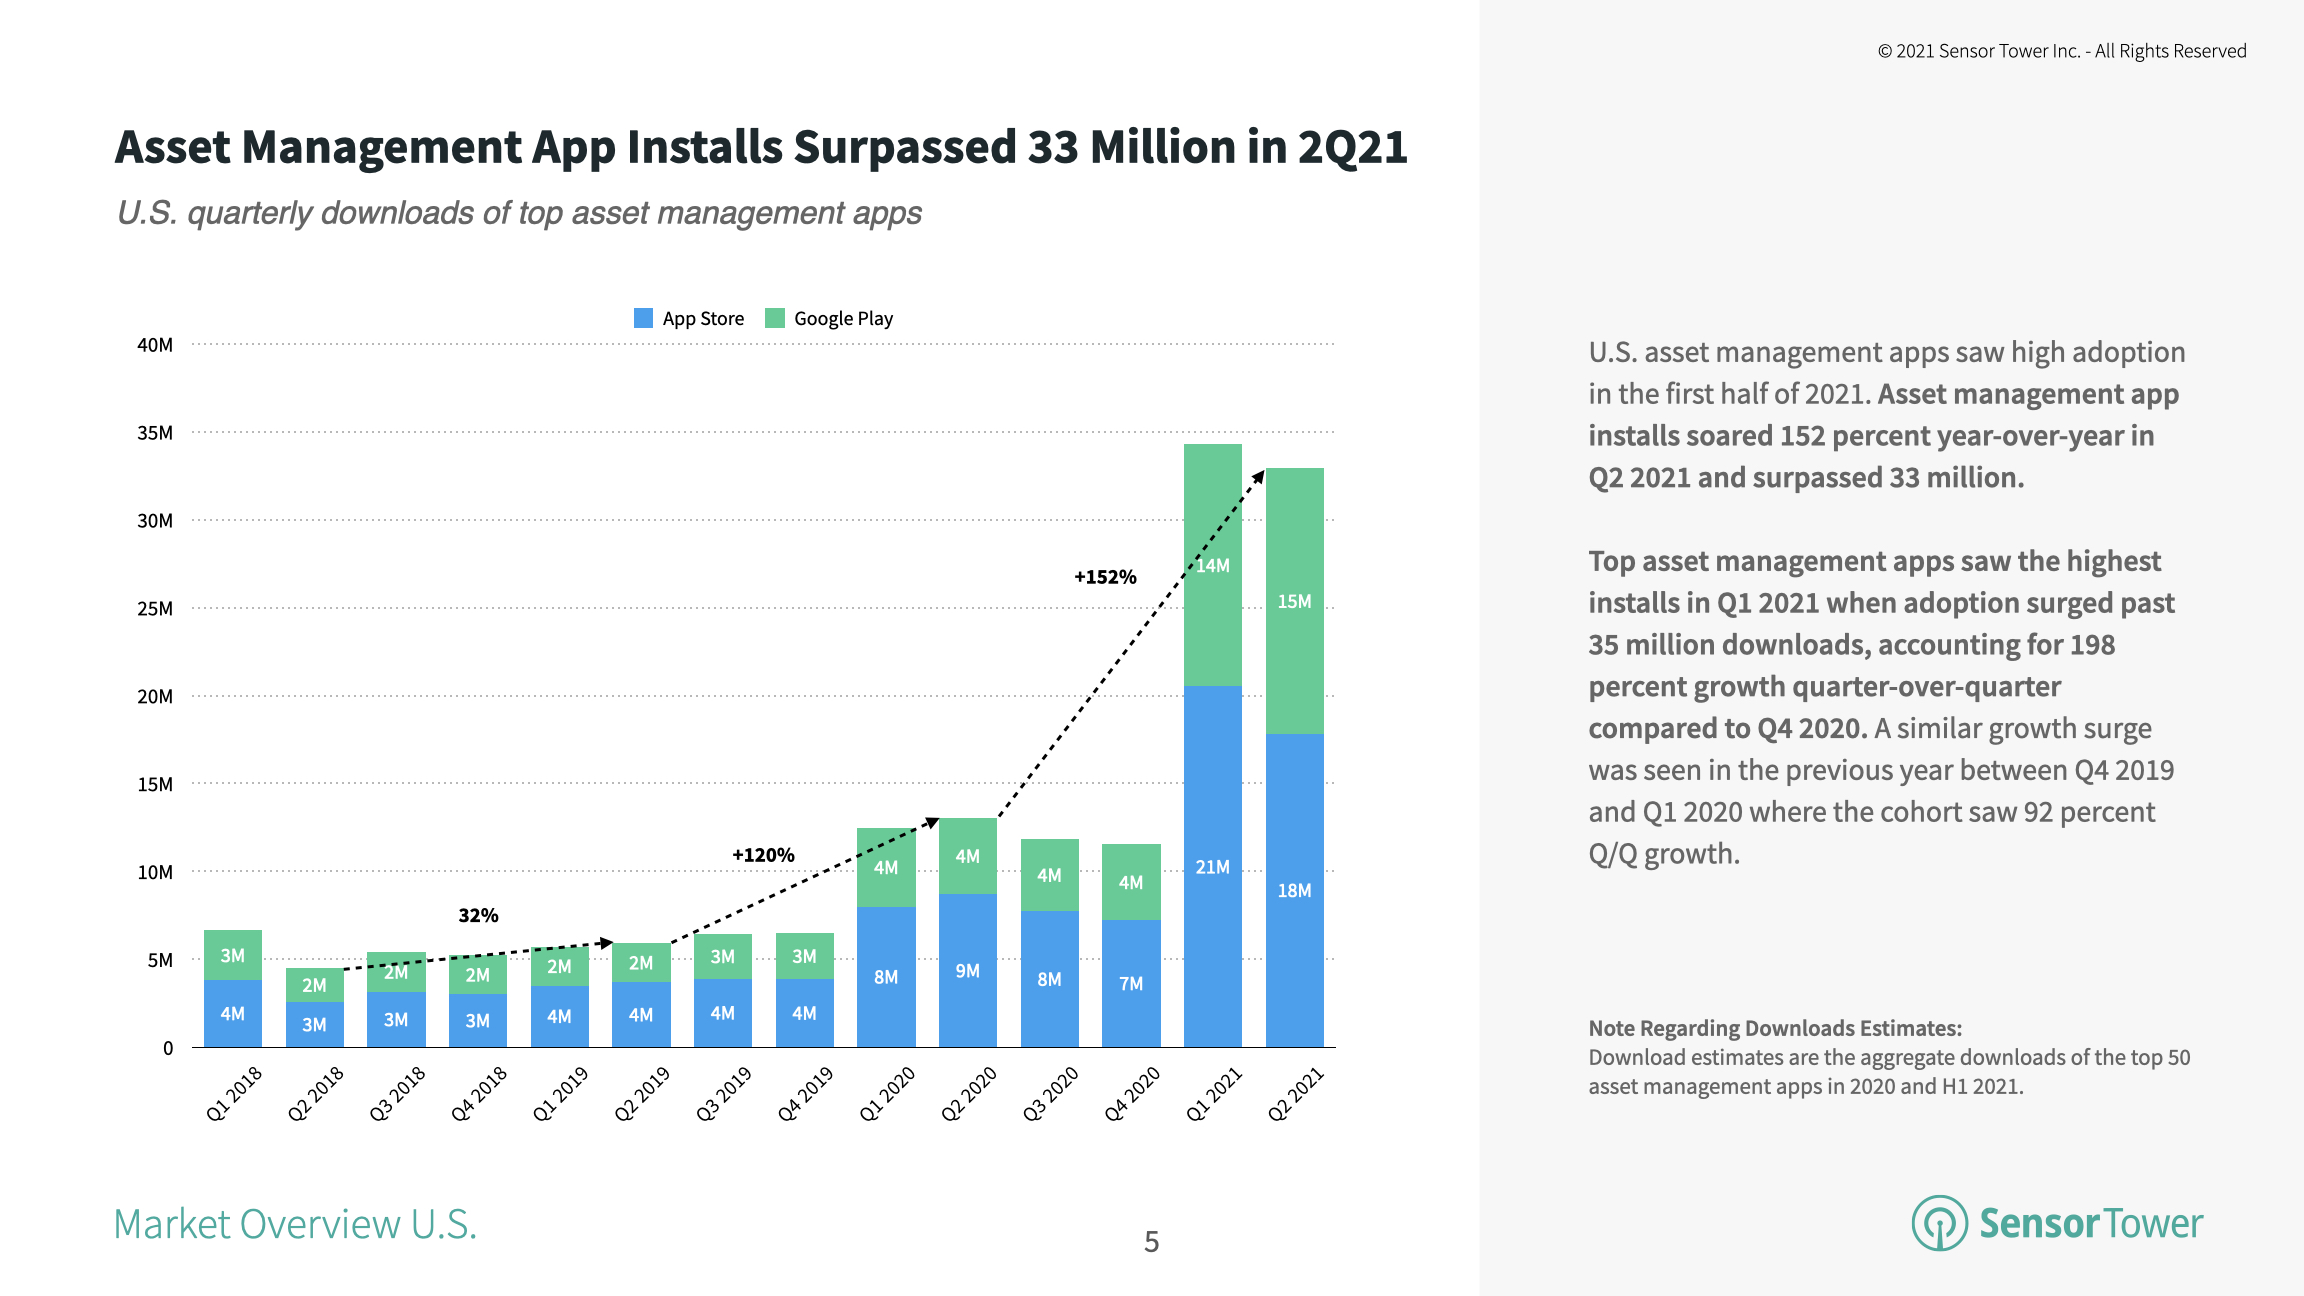 Top asset management apps climbed 198 percent quarter-over-quarter in Q1 2021 to more than 35 million downloads